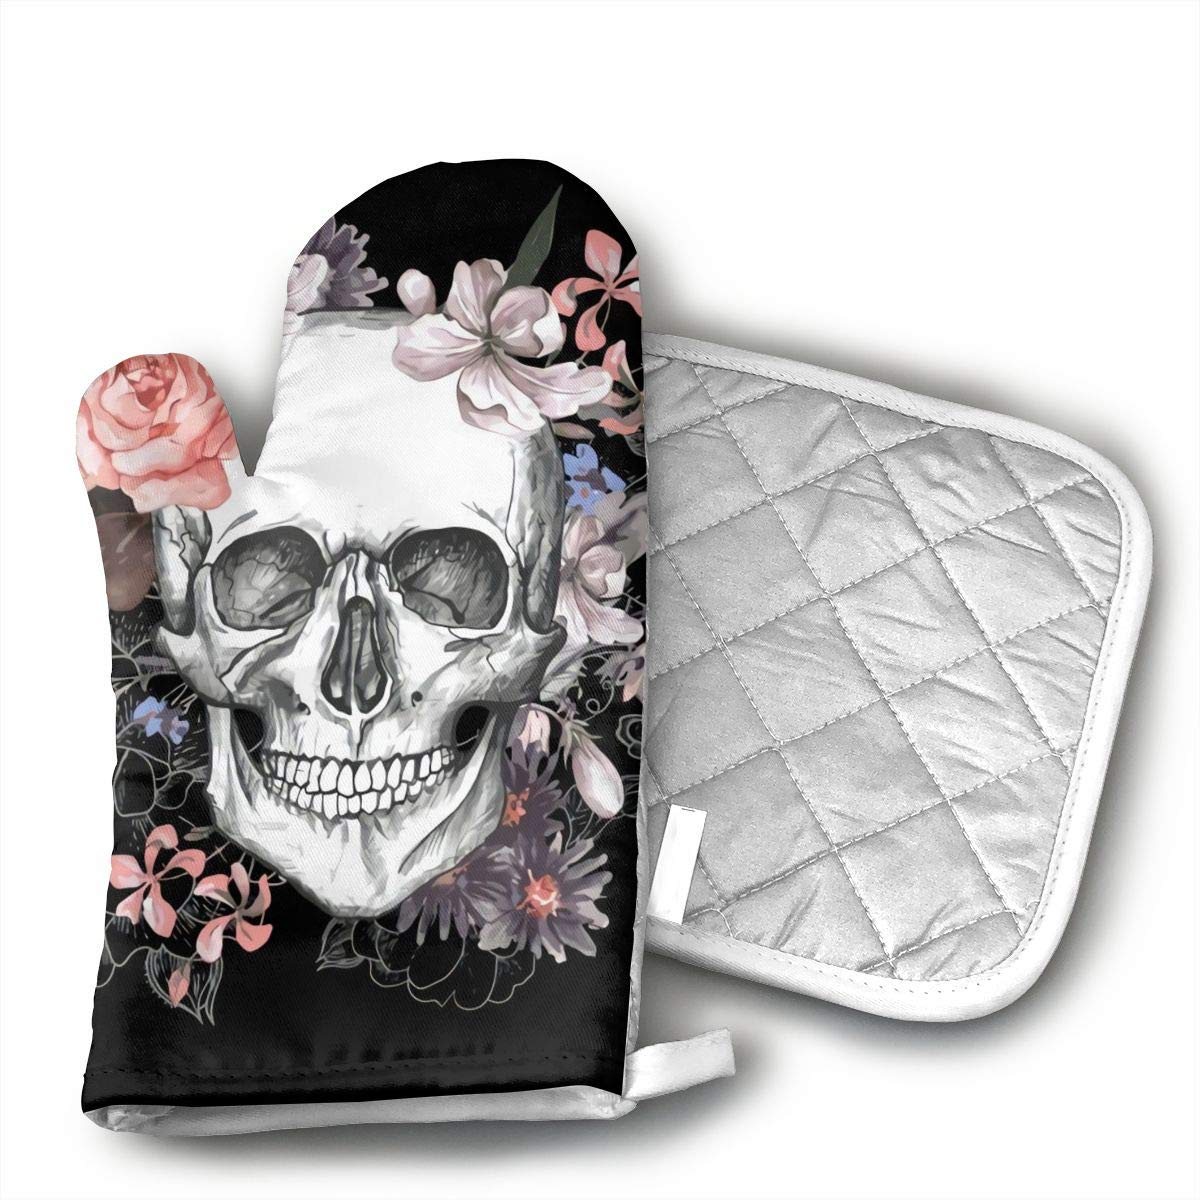 CHFSTi Oven Mitts Beautiful Floral Sugar Skull Non-Slip Silicone Oven Mitts& Pot Holders, Heat Resistant to 500Fahrenheit Degrees Kitchen Oven Gloves